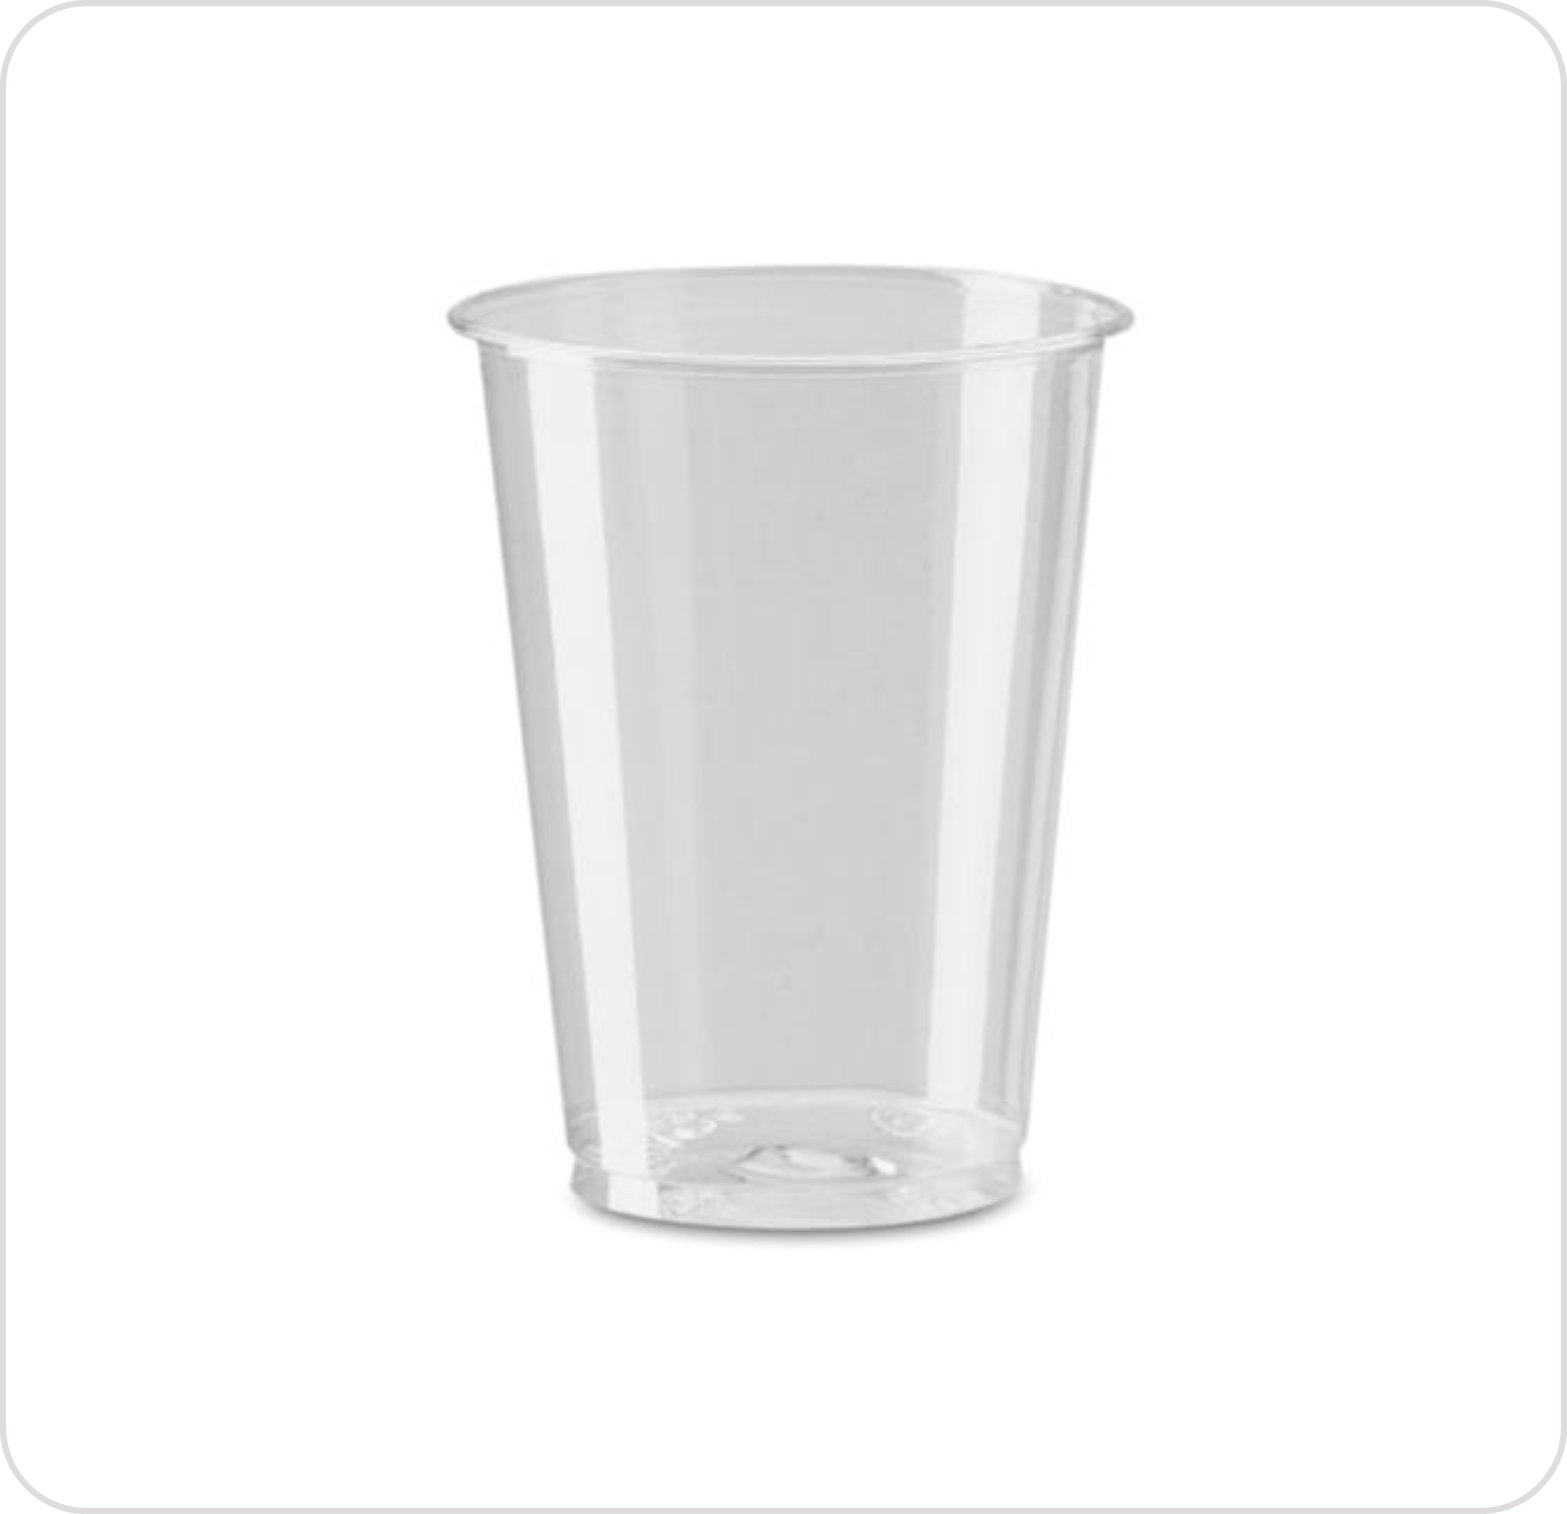 Cup 7 oz Plastic Flexible Clear